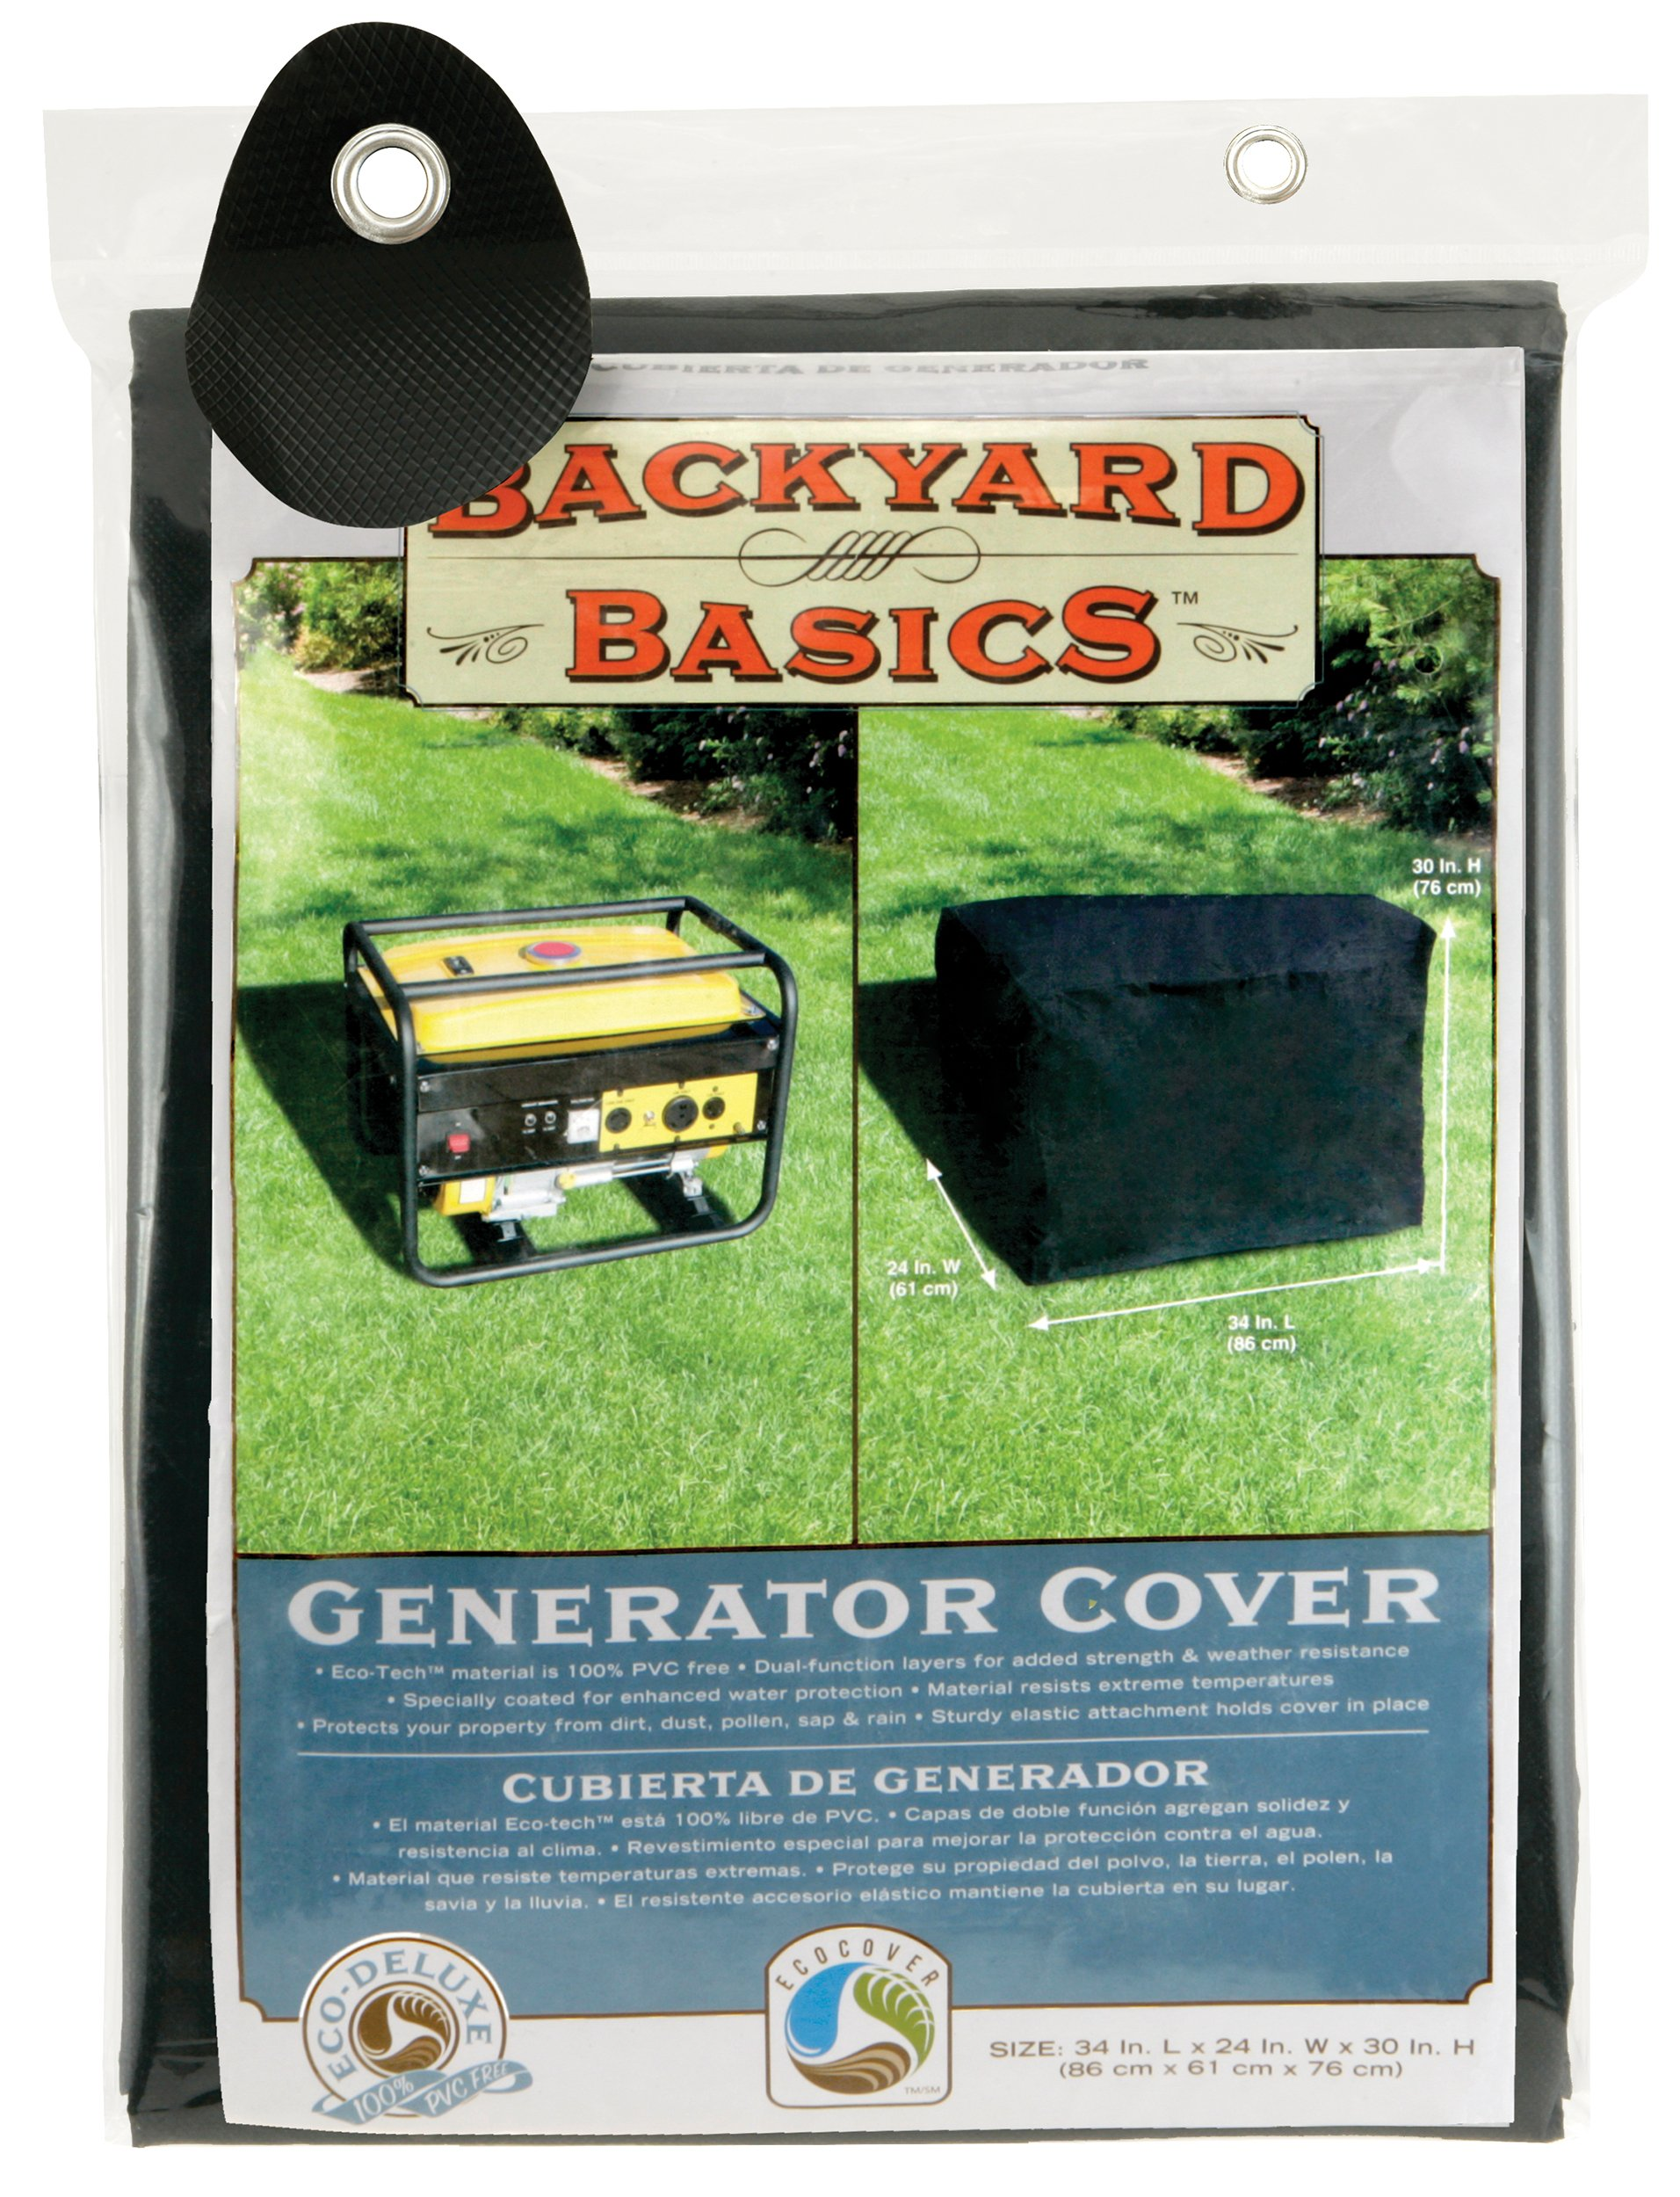 Backyard Basics Generator Cover, 34 x 24 x 30 Inch by Backyard Basics